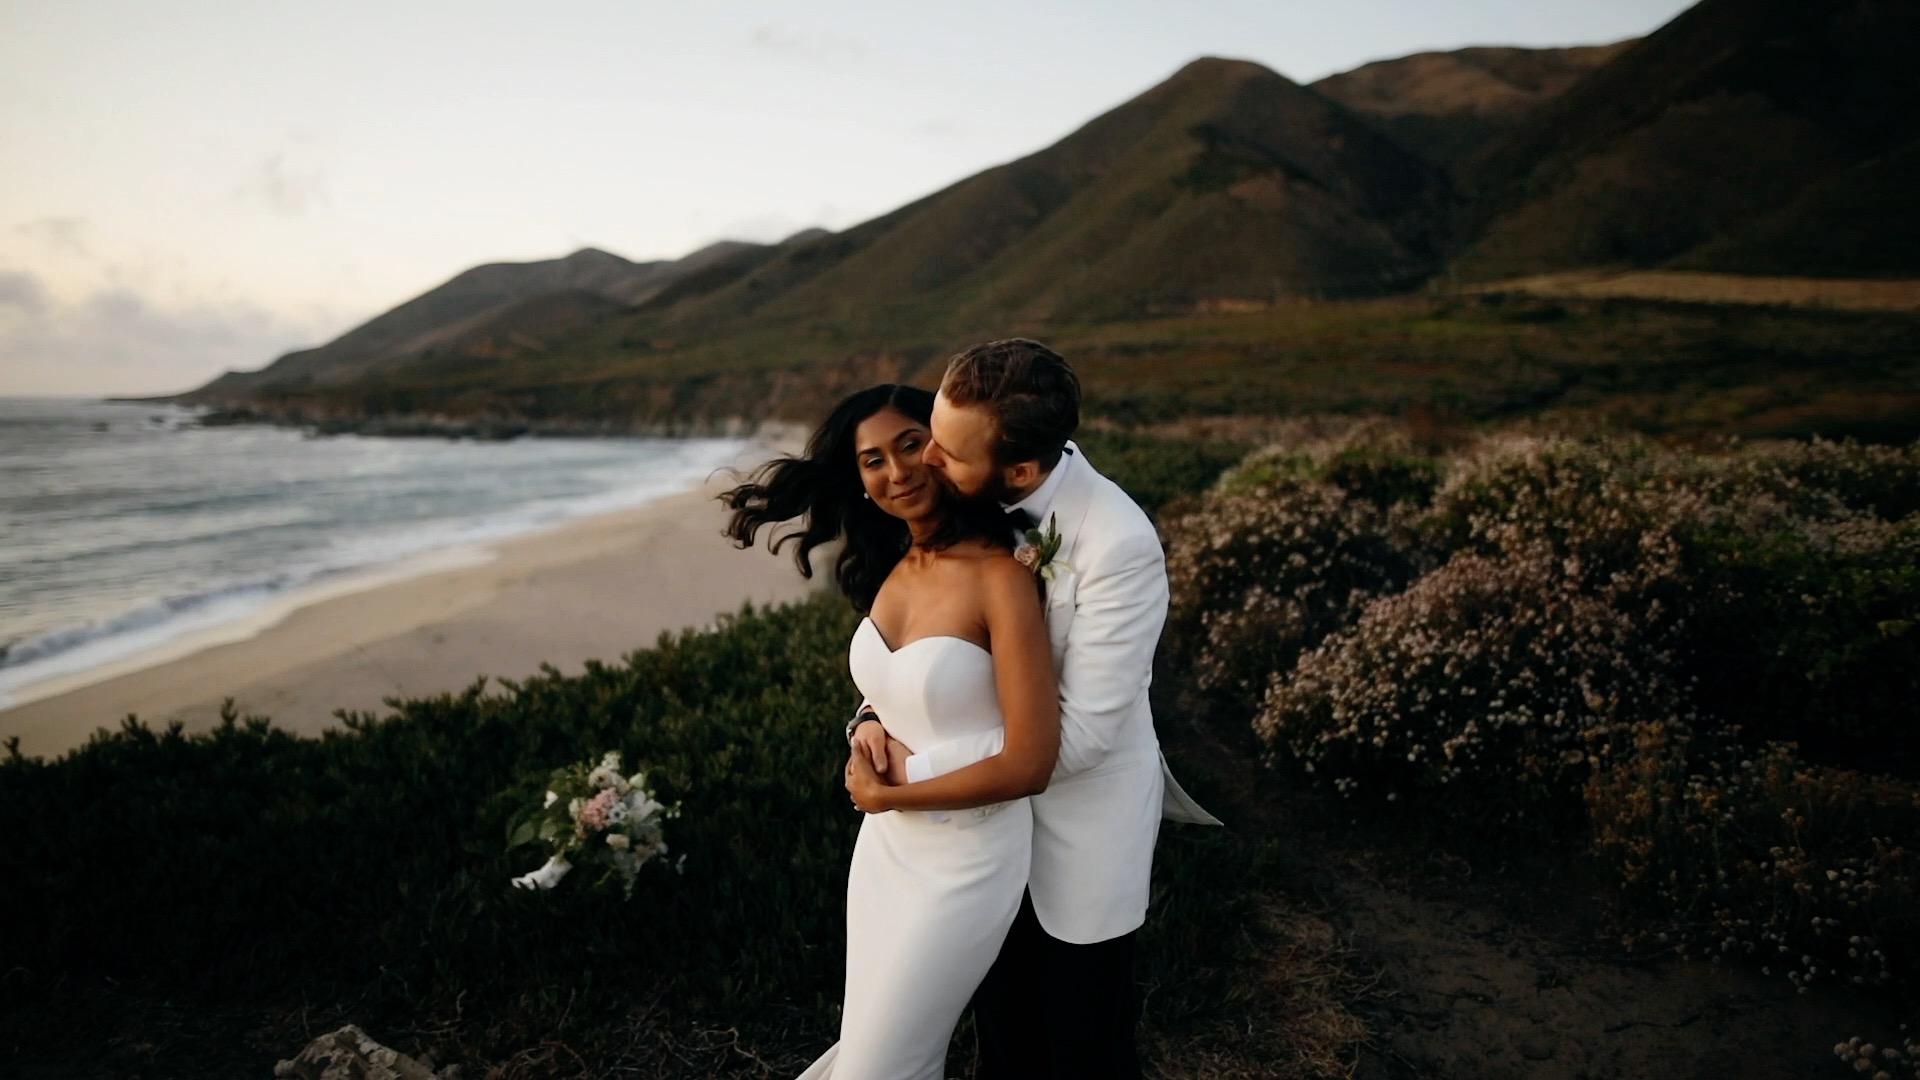 Maksym + Janis | Big Sur, California | Glen Oaks